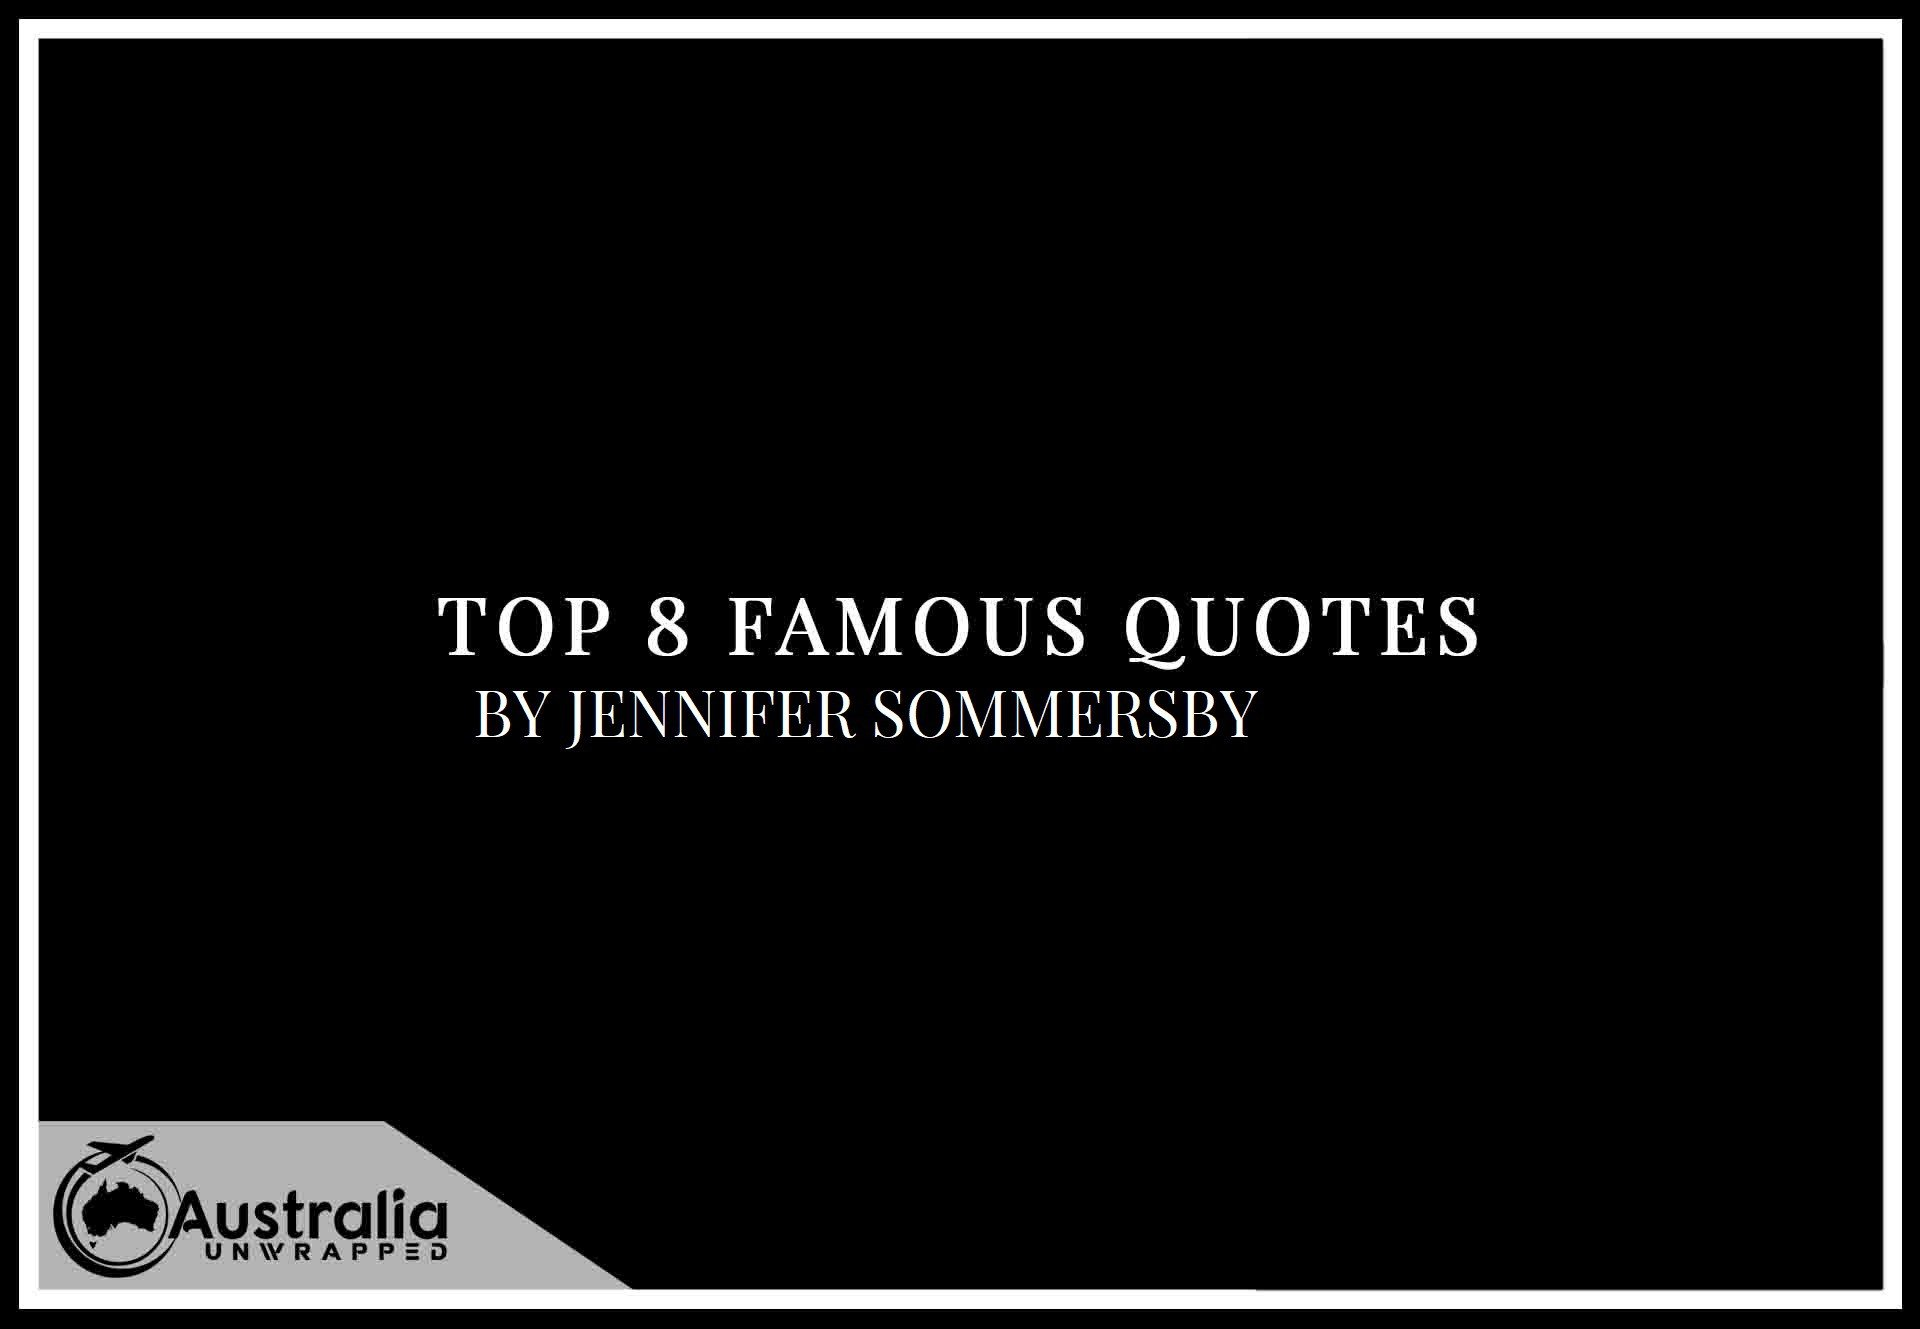 Top 8 Famous Quotes by Author Jennifer Sommersby